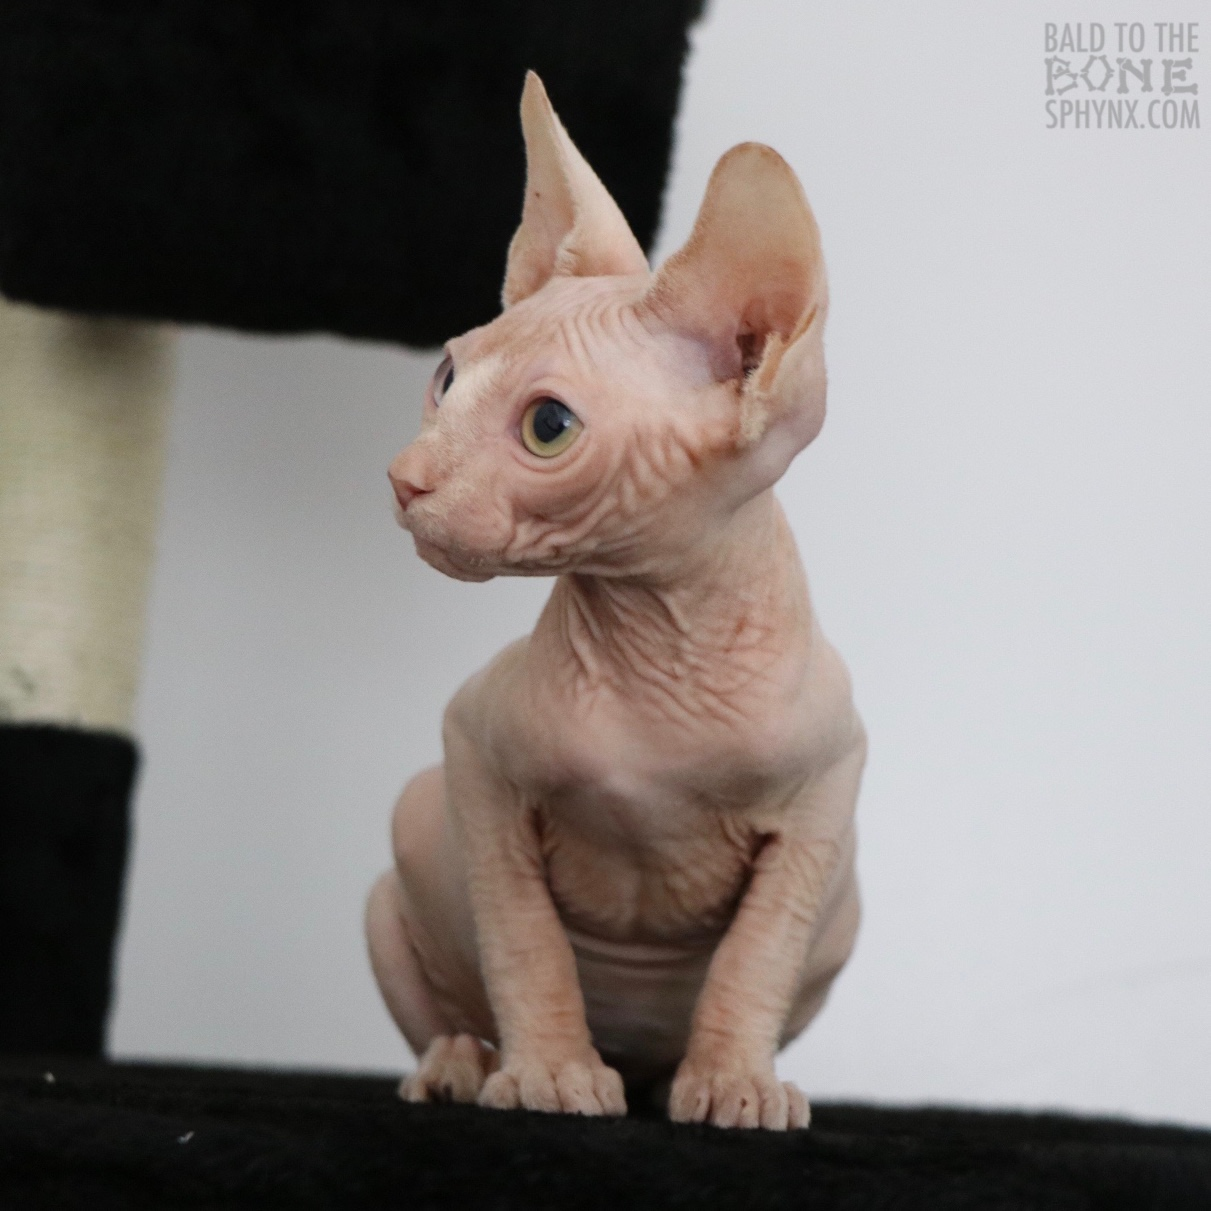 AVAILABLE KITTENS | Bald To The Bone Sphynx | Breeder of